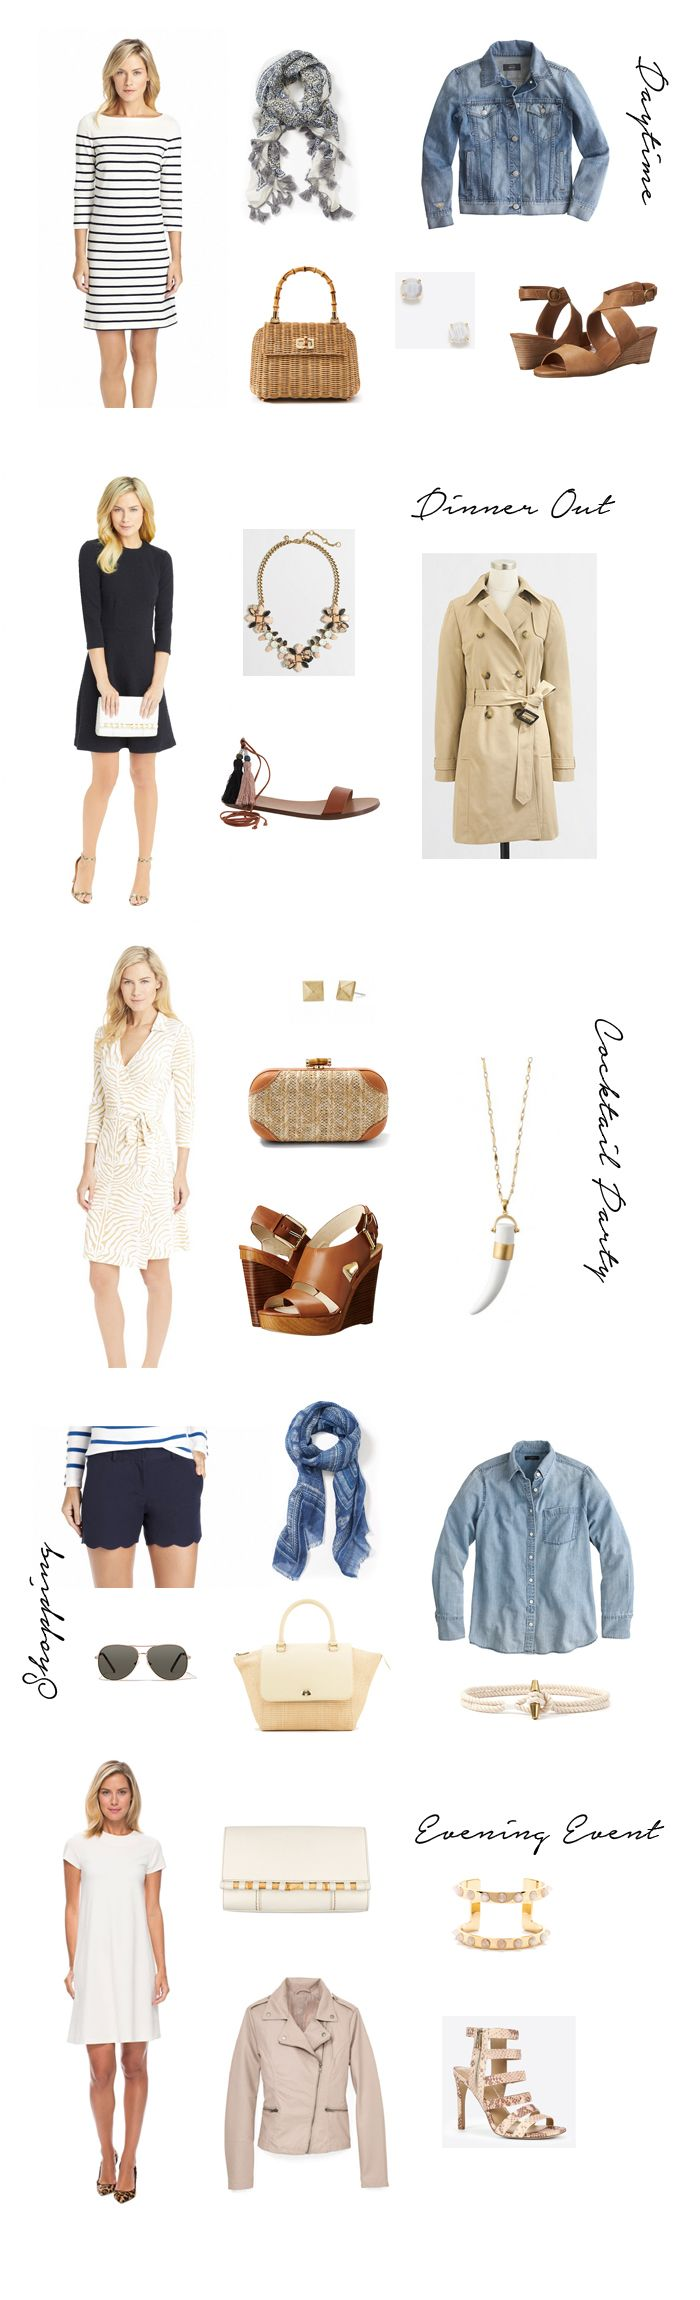 Elements of Style Blog | Fashion Friday: Spring Faves from J. McLaughlin (and Discount Code!) | http://www.elementsofstyleblog.com